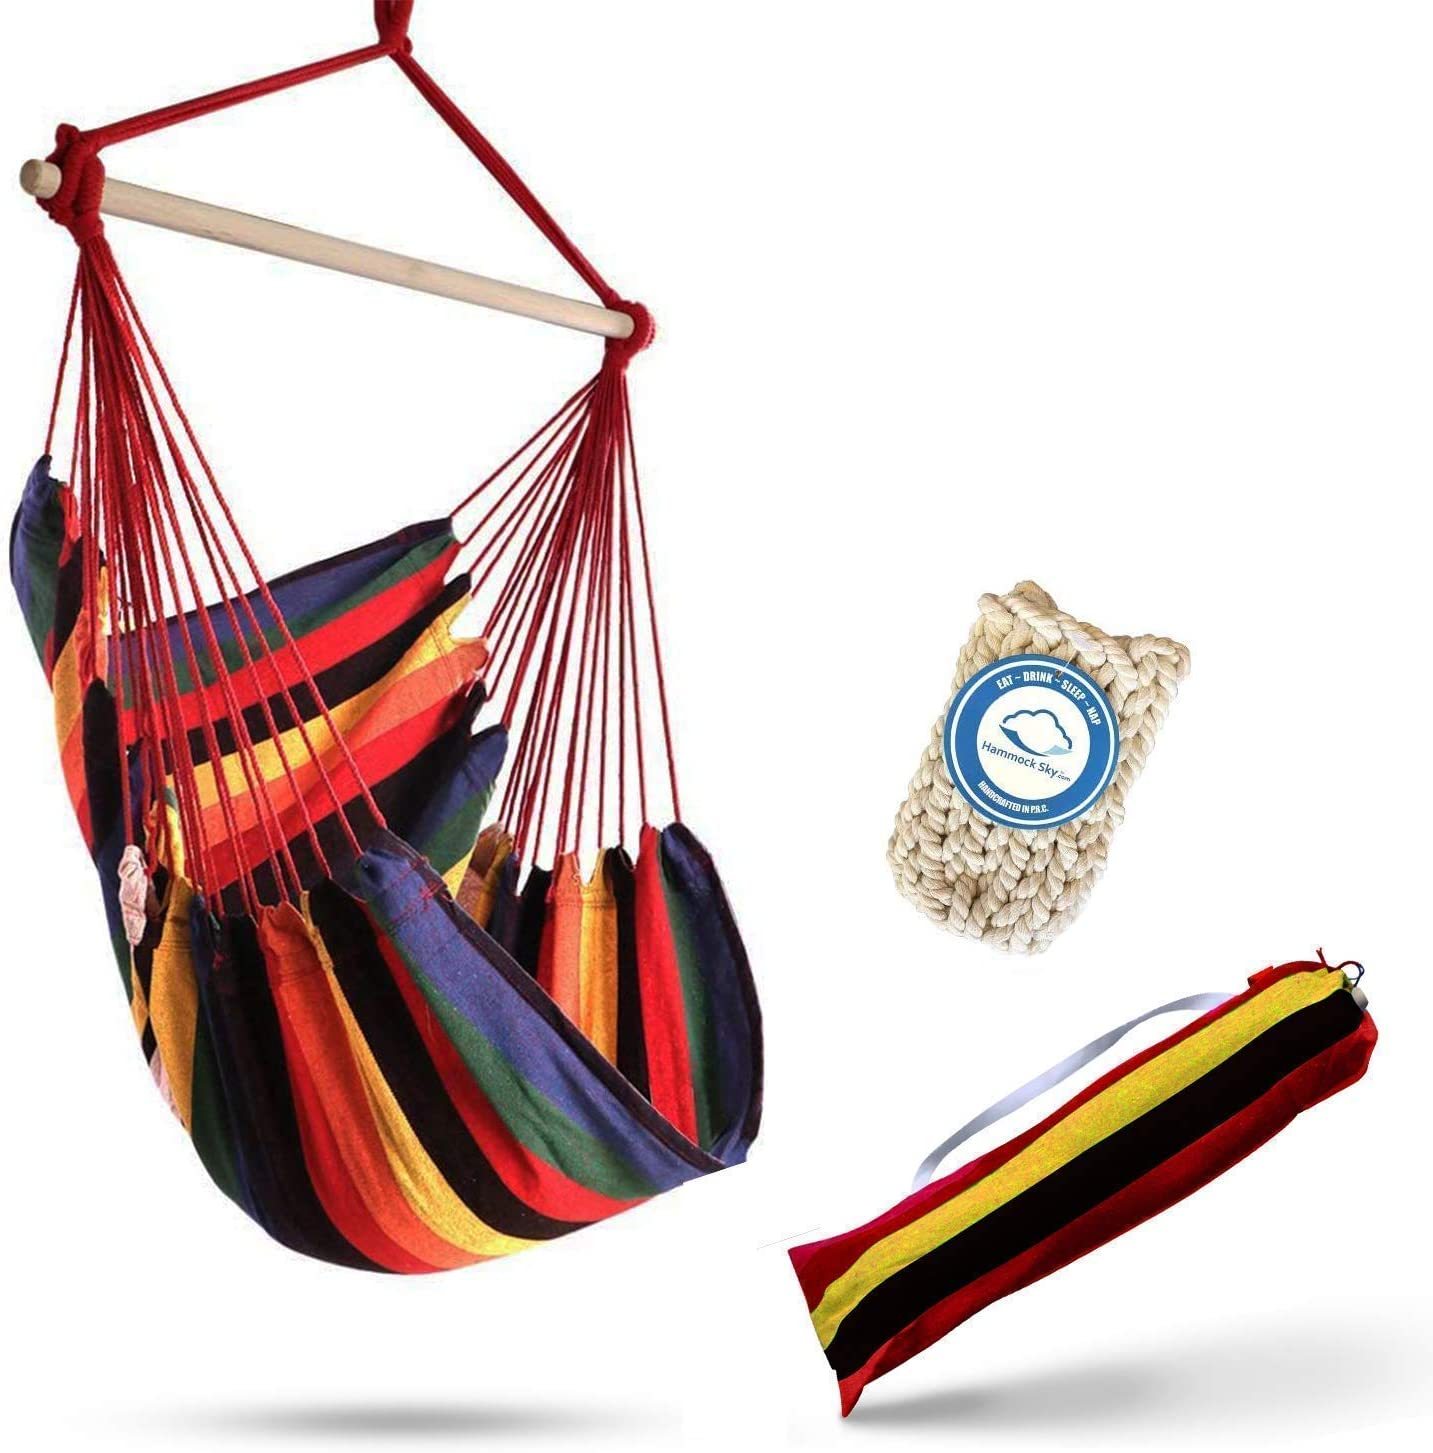 Detroit Mall San Jose Mall Hammock Sky Large Brazilian Chair Portable with Dr Hot